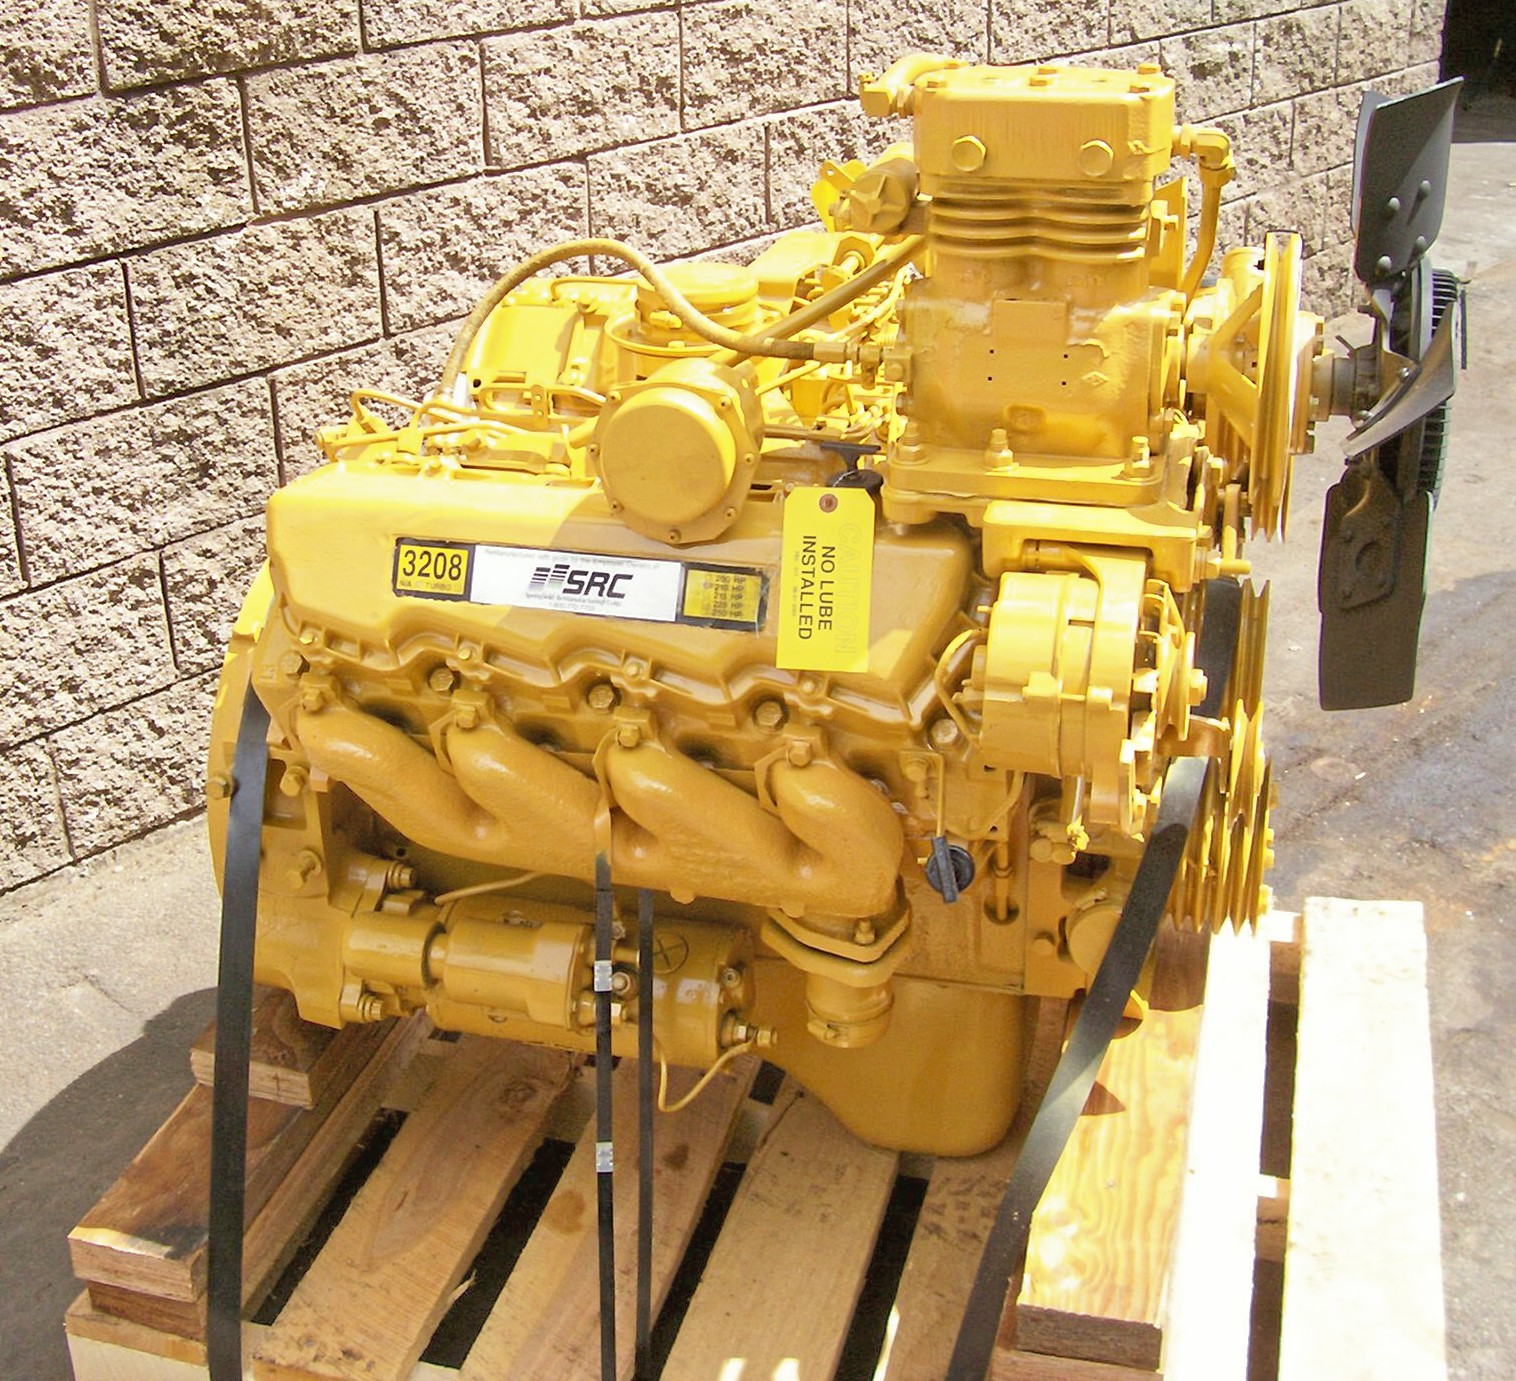 caterpillar c15 manual with 3208 Cat Engine Fan on 3406b Cat Engine Fuel Filter Housing additionally C7 Cat Engine Water Pump Removal besides 2005 Peterbilt 379x 322511869720 70219 as well Vehicles And Equipment Auction together with Cat C15 Acert Ecm Wiring Diagram.